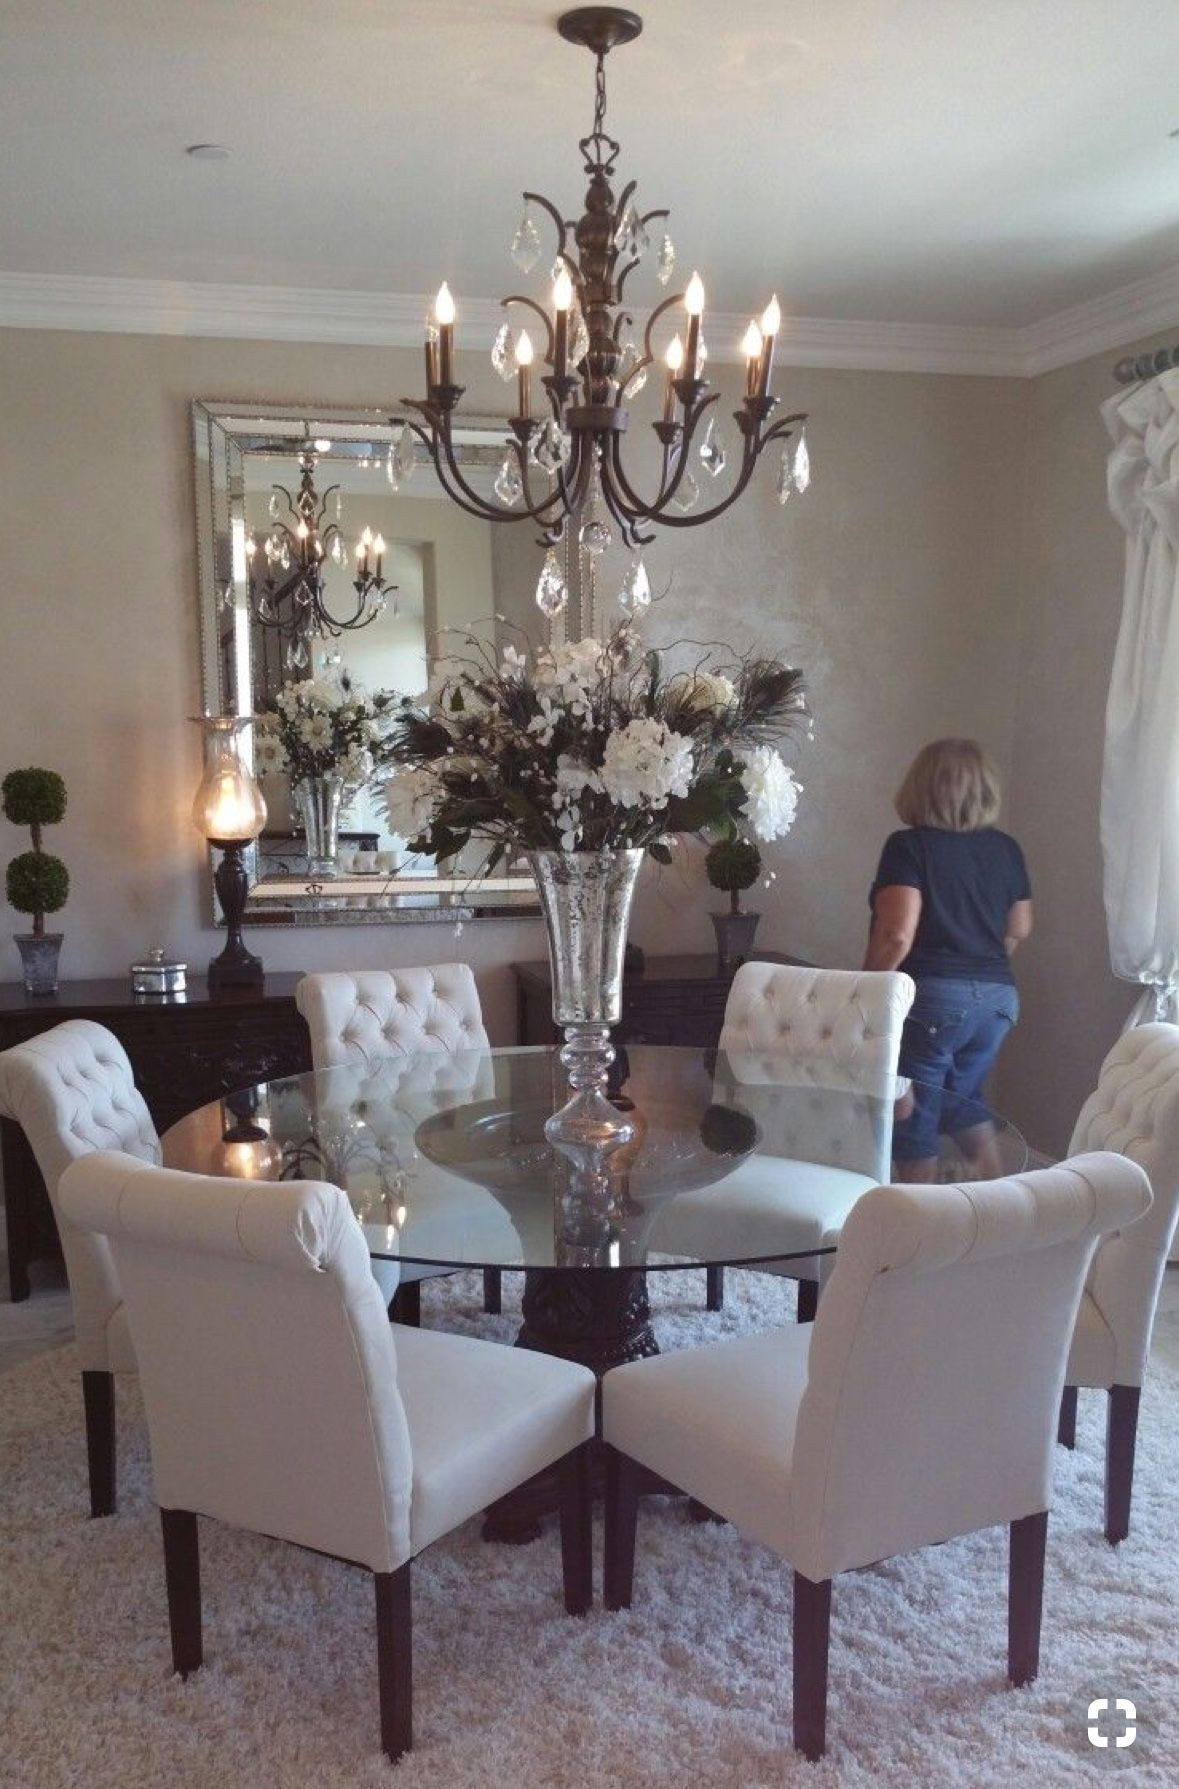 Pinterest Dining Room Table Decor Pinterest Tkmaignan For More Inspiration Dÿ In 2020 Dining Room Table Decor Small Round Kitchen Table Elegant Dining Room